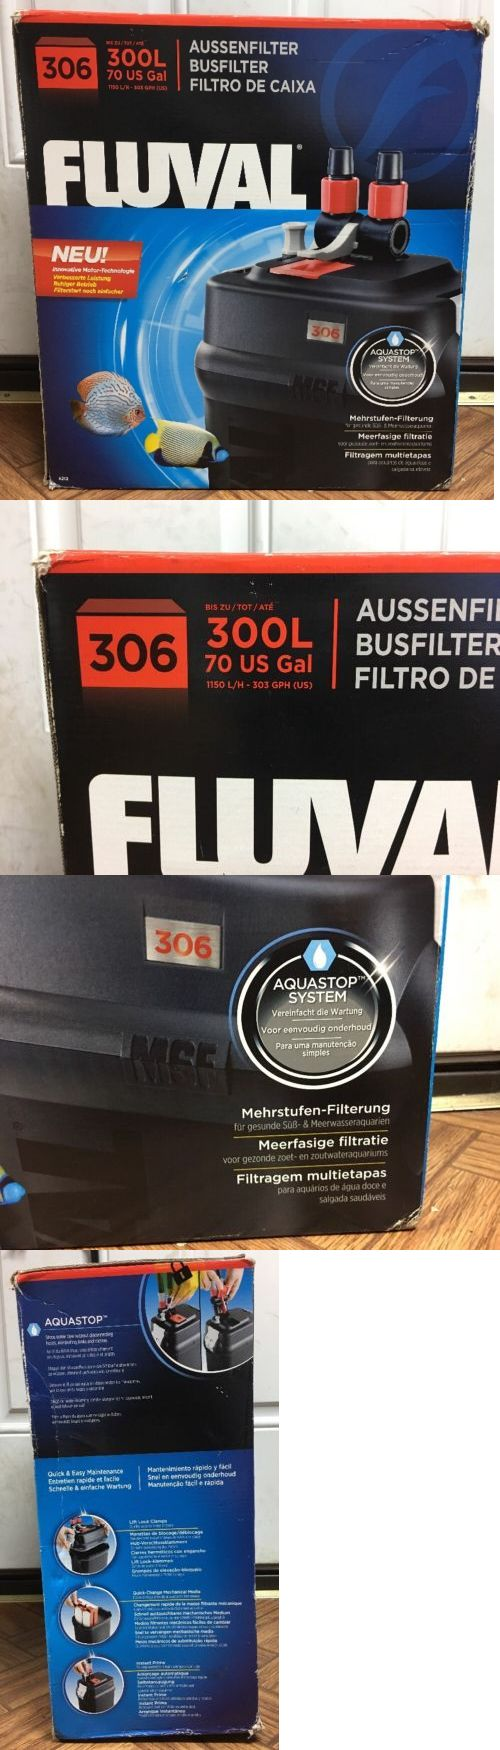 Filter Media and Accessories 126476: Fluval 306 Aquarium Filter 300 L 70 Us Gal Open Box New -> BUY IT NOW ONLY: $124.75 on eBay!